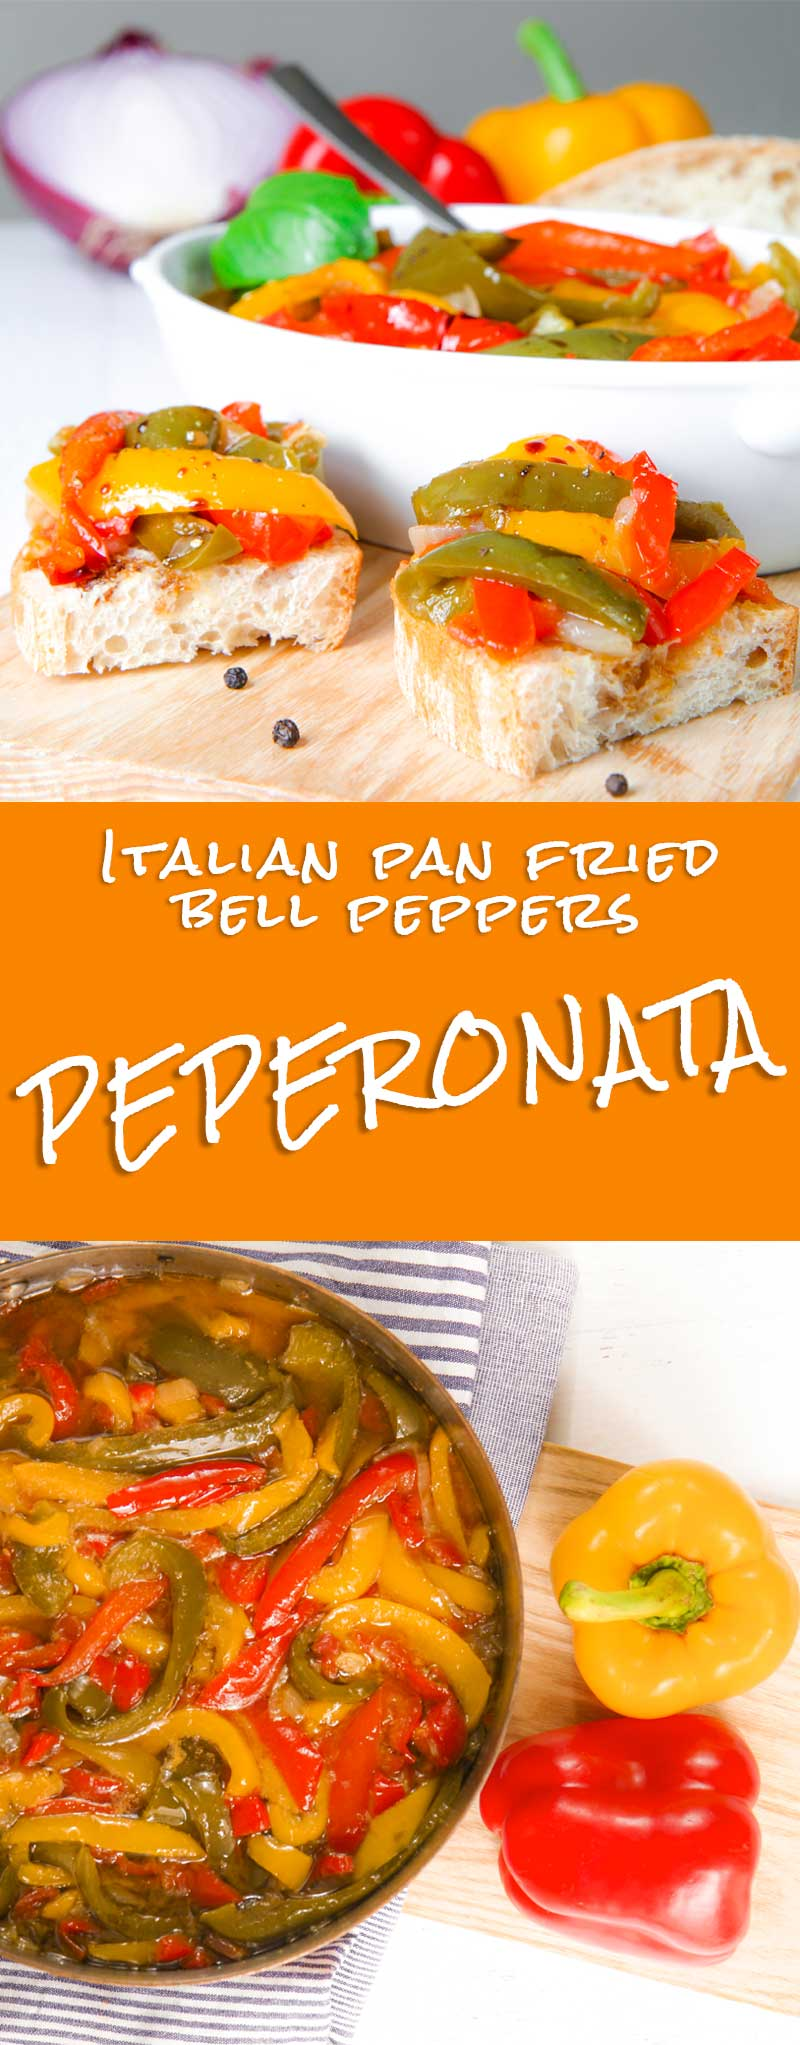 Italian peperonata recipe is very popular and prepared with some little differences in almost all the Italian regions. Bell peppers are slowly pan fried along with onion and diced tomatoes. Peperonata is delicious served over toasted bread slices ore aside grilled meats. It's flavor recalls me the Italian summer, where it is usual prepare this tasty dish in advance and bring it at grill parties in the countryside!